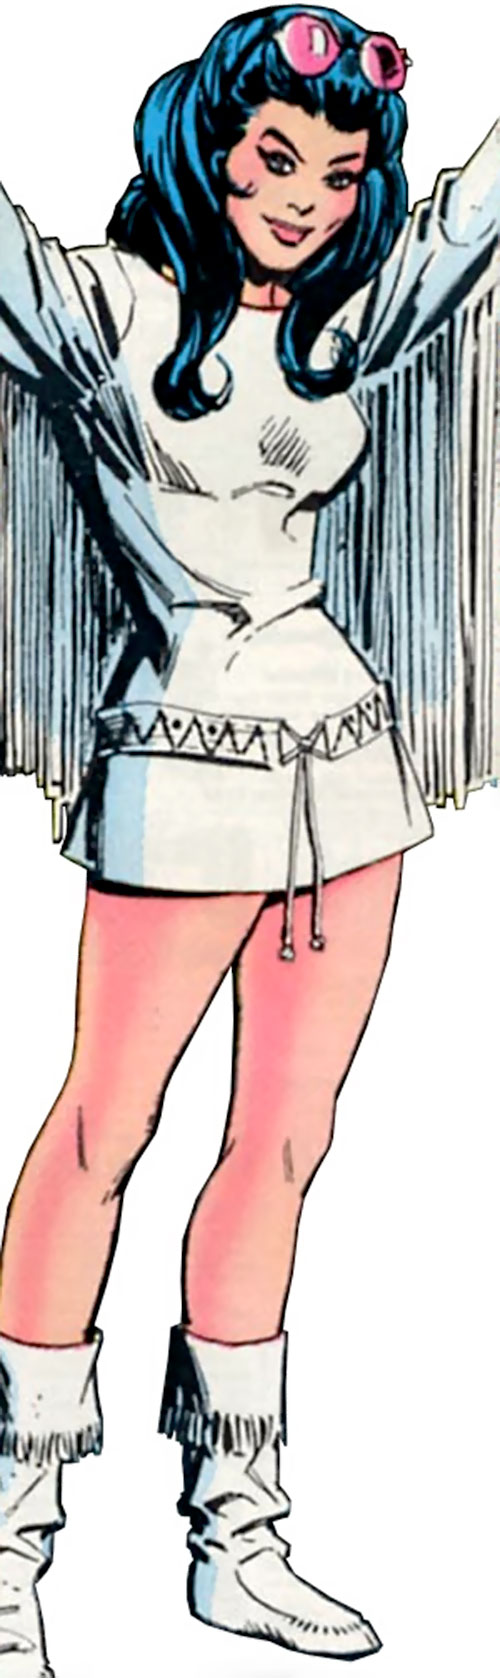 Wonder Woman Diana Prince (Karate mod era) (DC Comics) in a 1960s white minidress